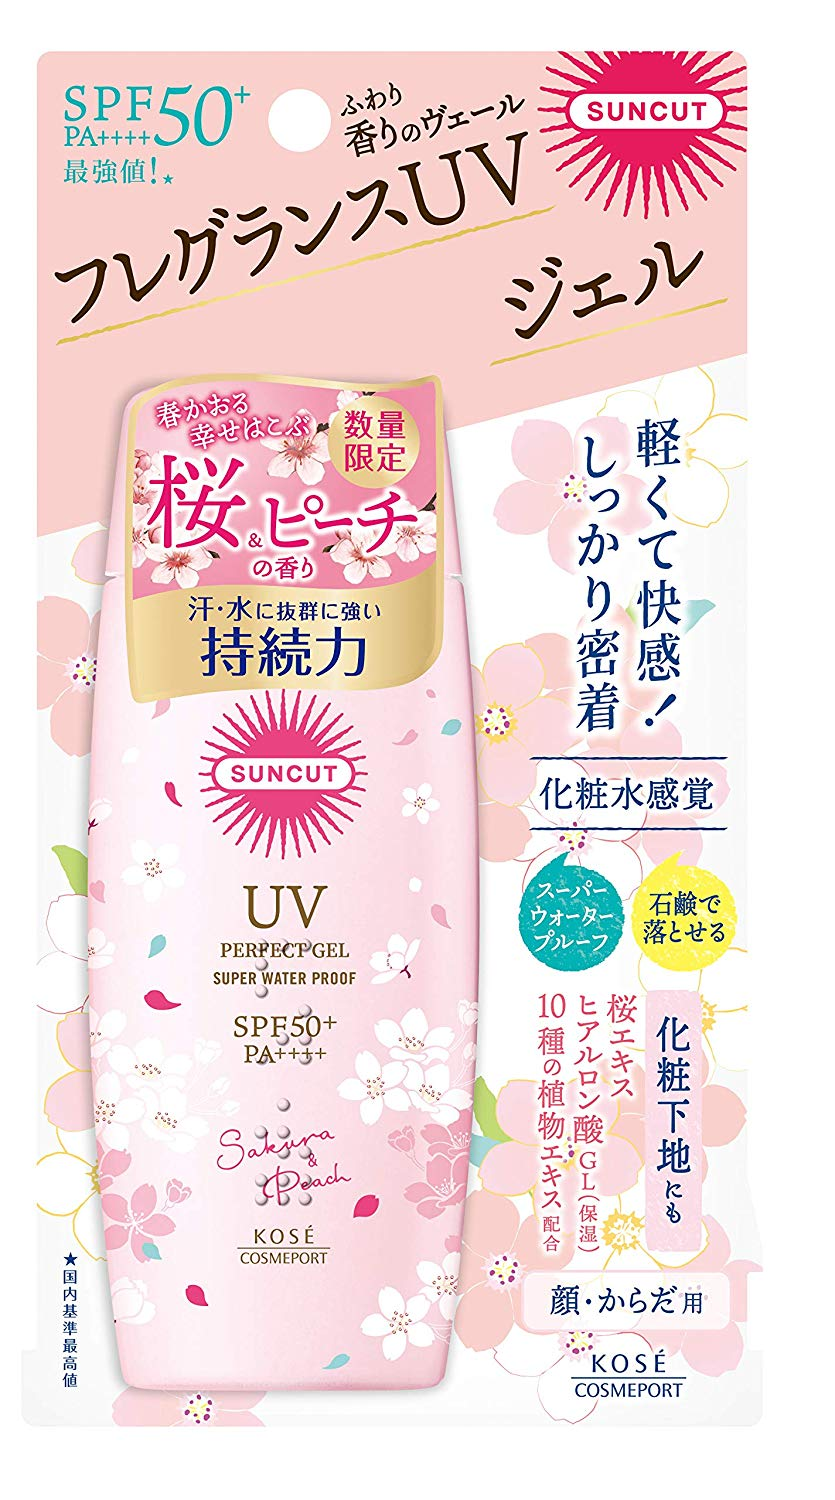 KOSE Suncut UV Protect Gel Sunscreen SPF50+ PA++++ Cherry & Peach Scent (100g)